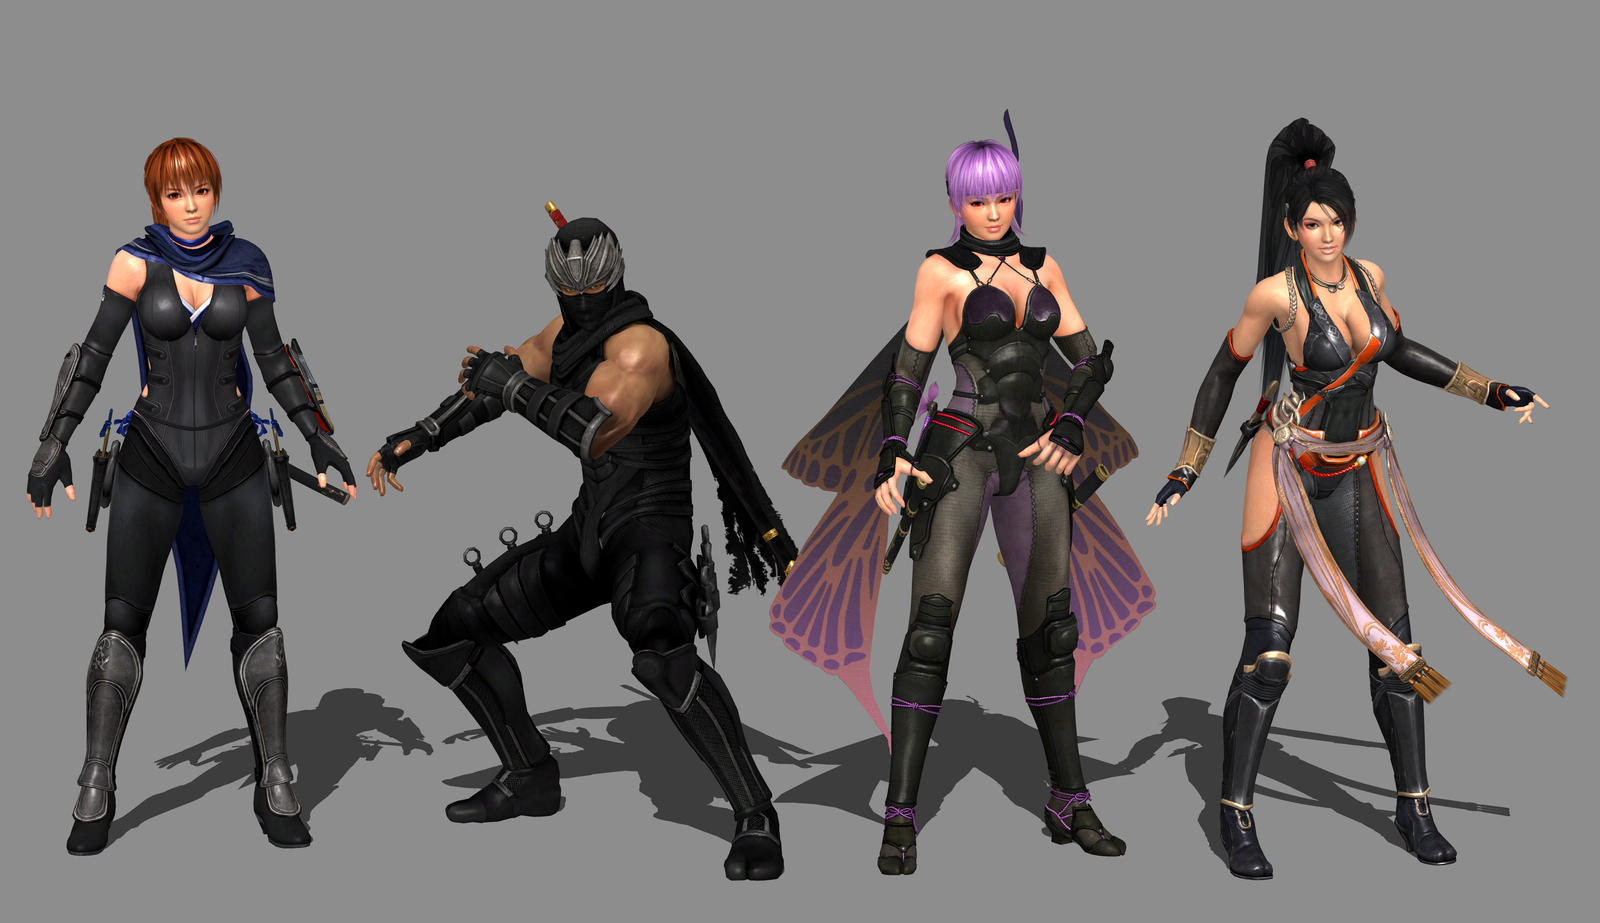 Ninja Gaiden 3 Razor S Edge The Cast By Ishikahiruma On Deviantart